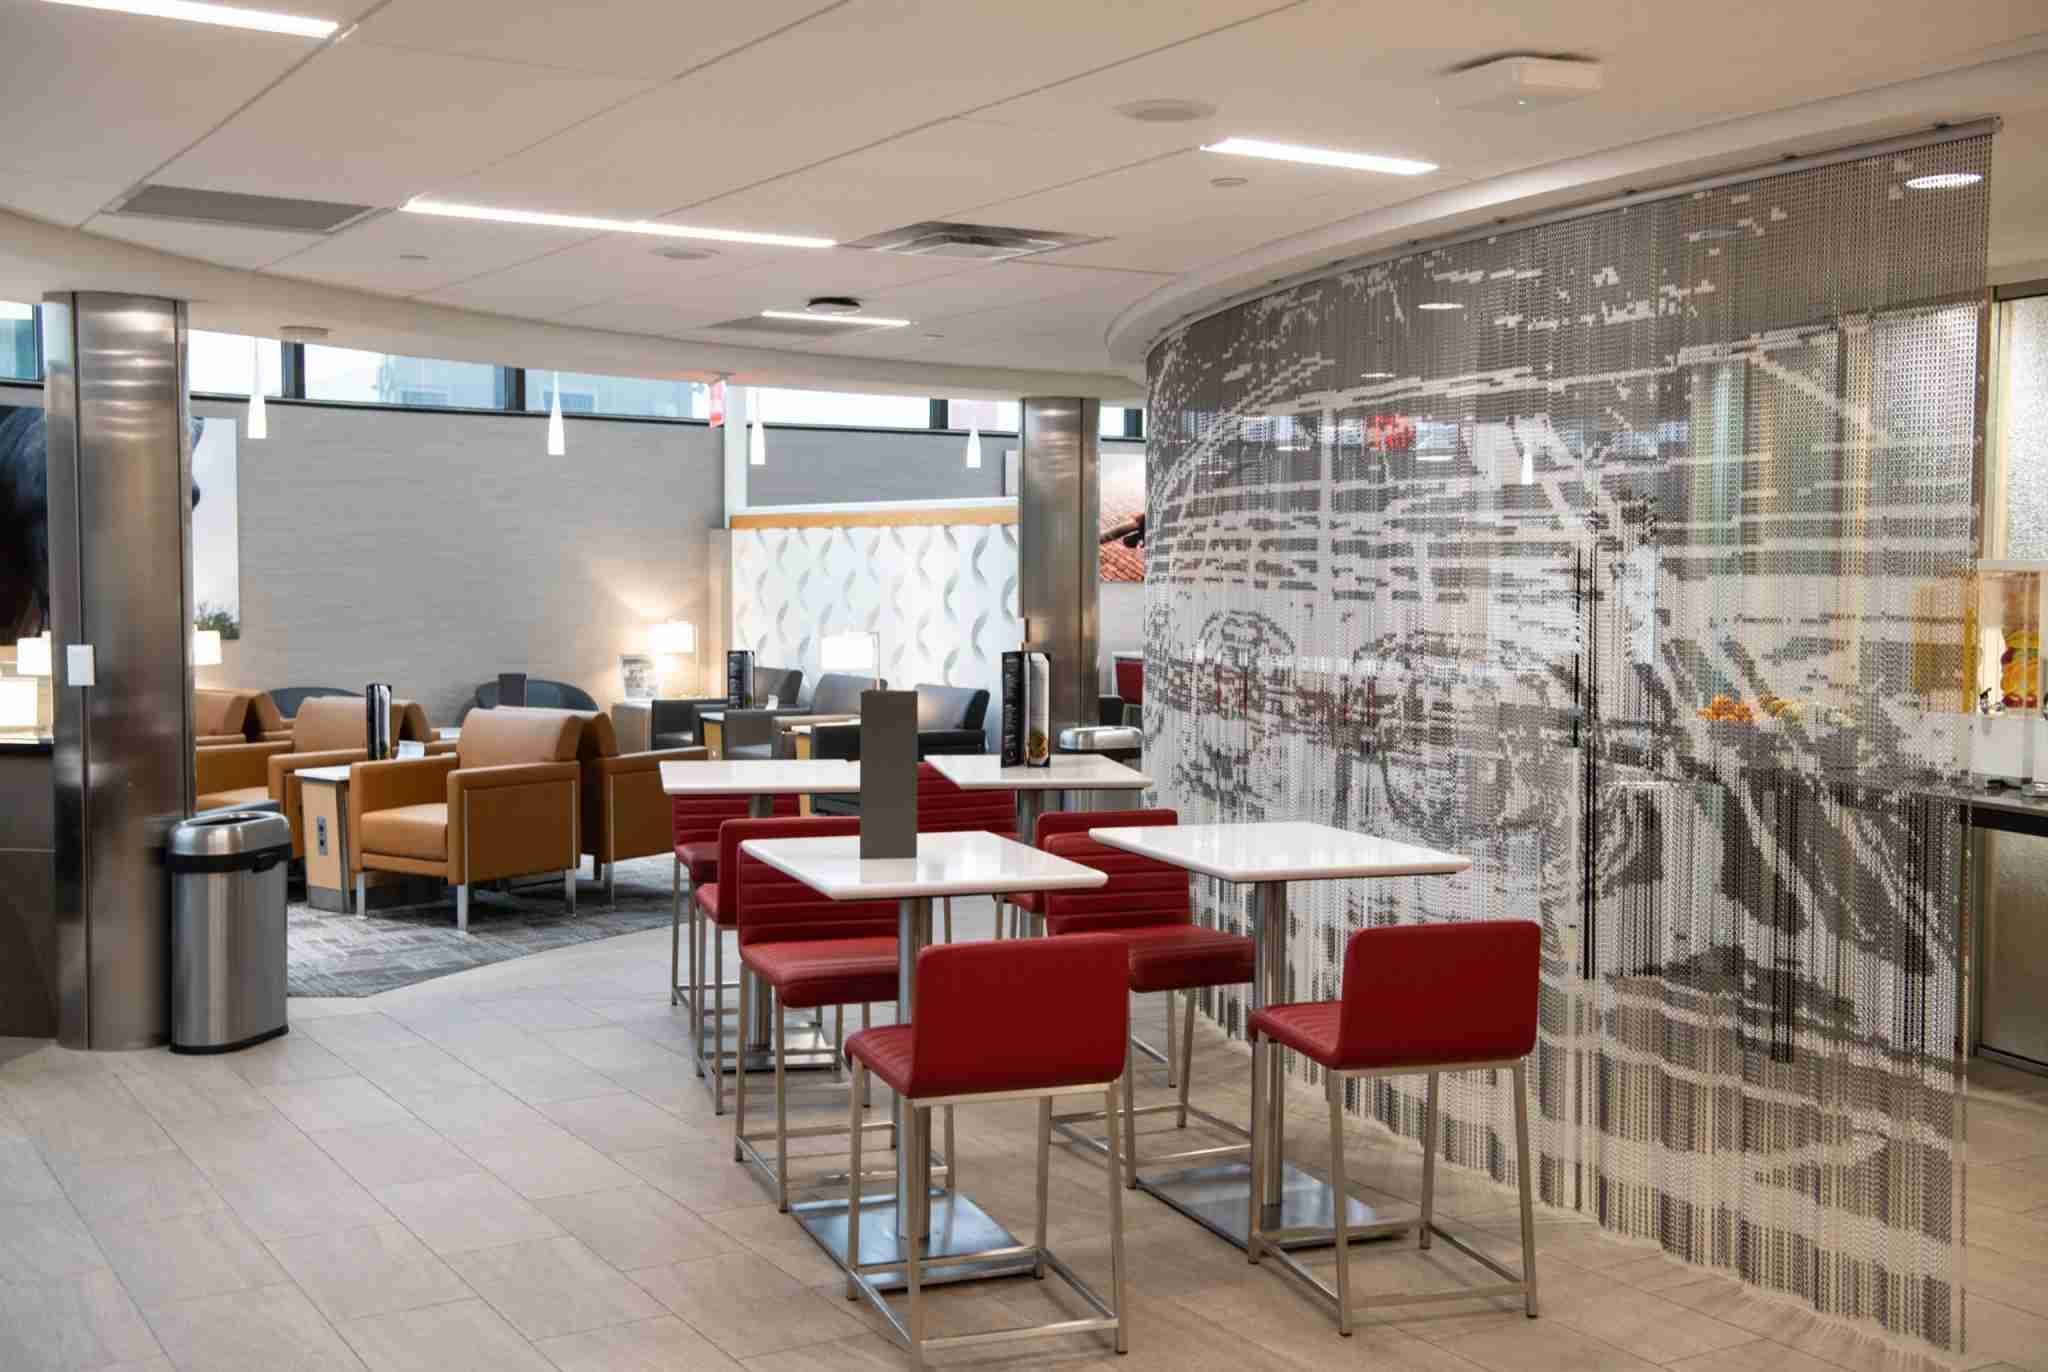 DFW Terminal E Admirals Club (Courtesy of American Airlines)